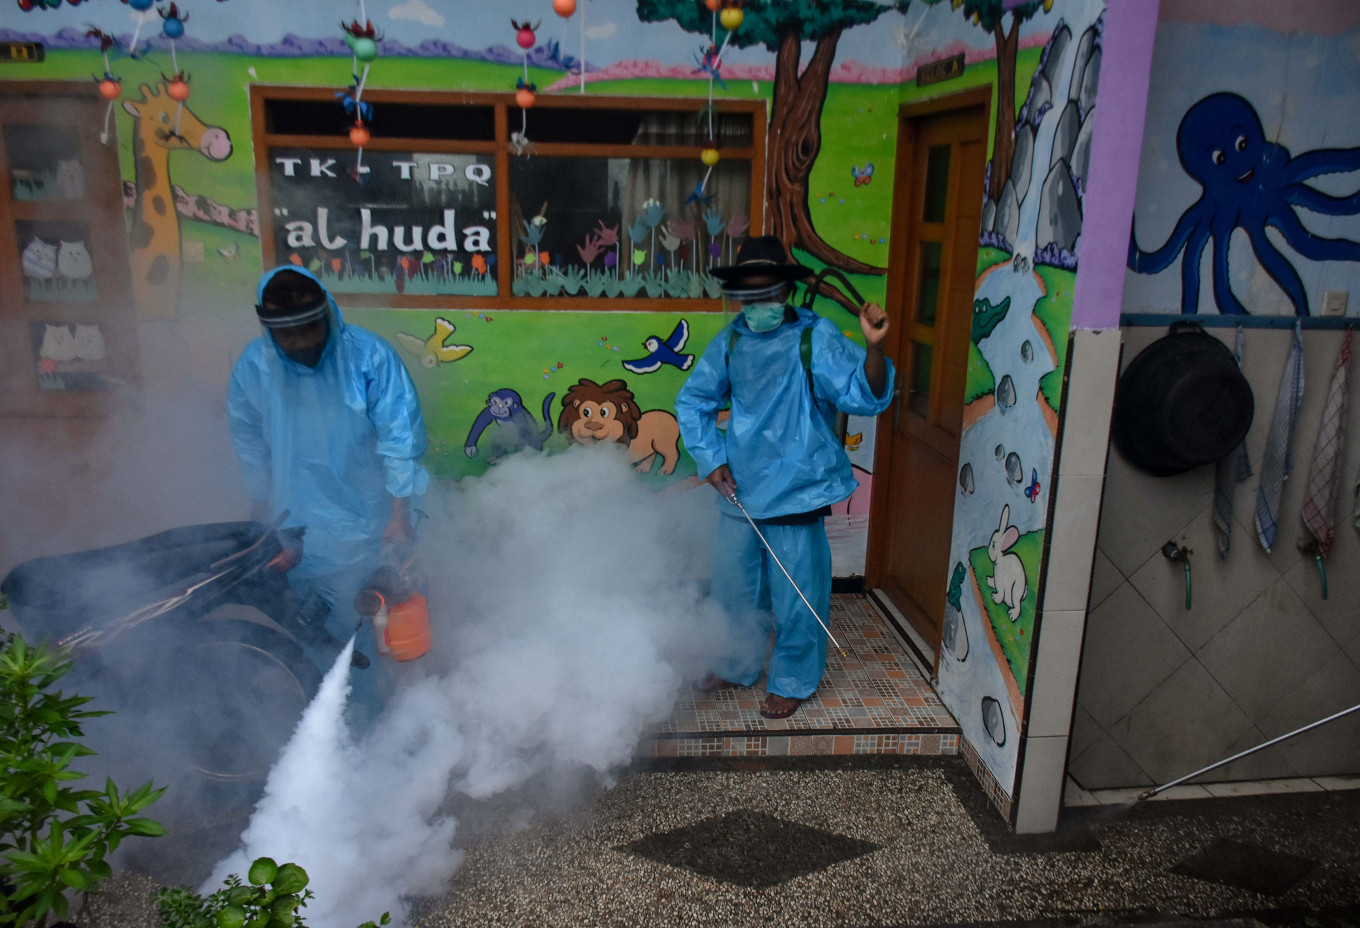 Dengue fever kills more than COVID-19 in Central Java